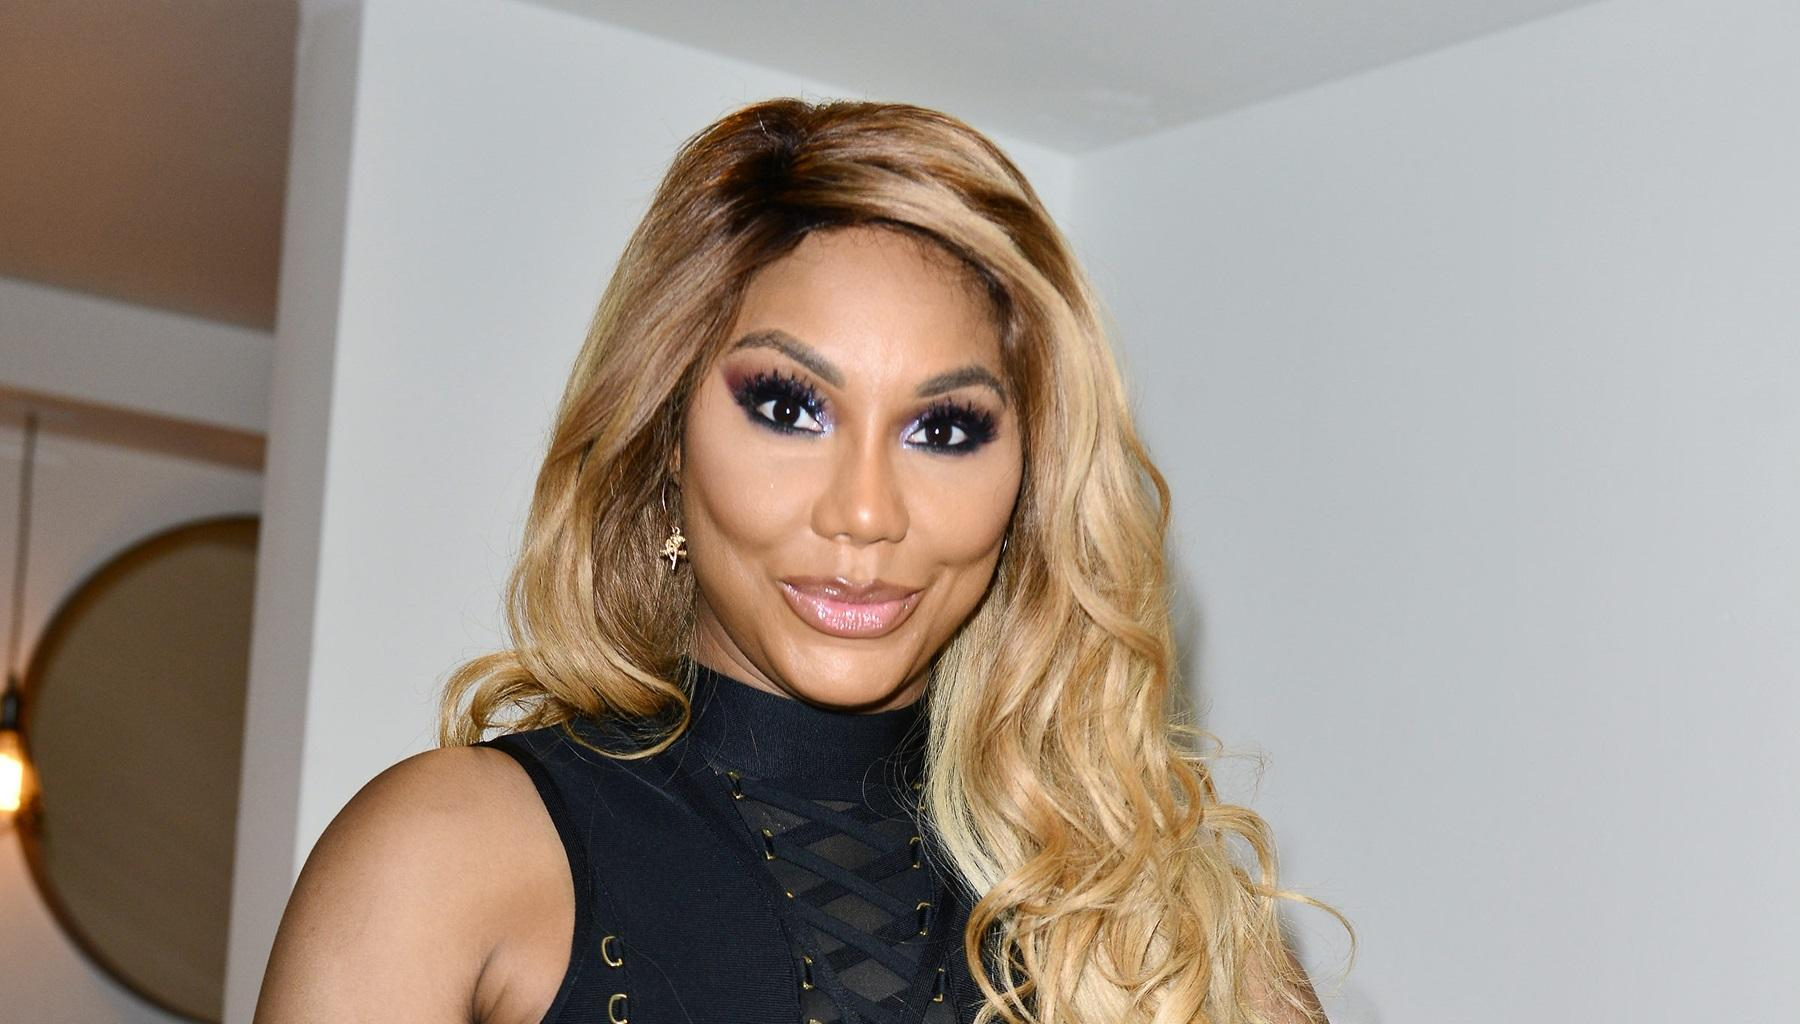 Trina Braxton Gets A Husband While Sister Tamar Braxton Loses Something Priceless -- BF David Adefeso Should Take This As The Sign He Was Waiting For